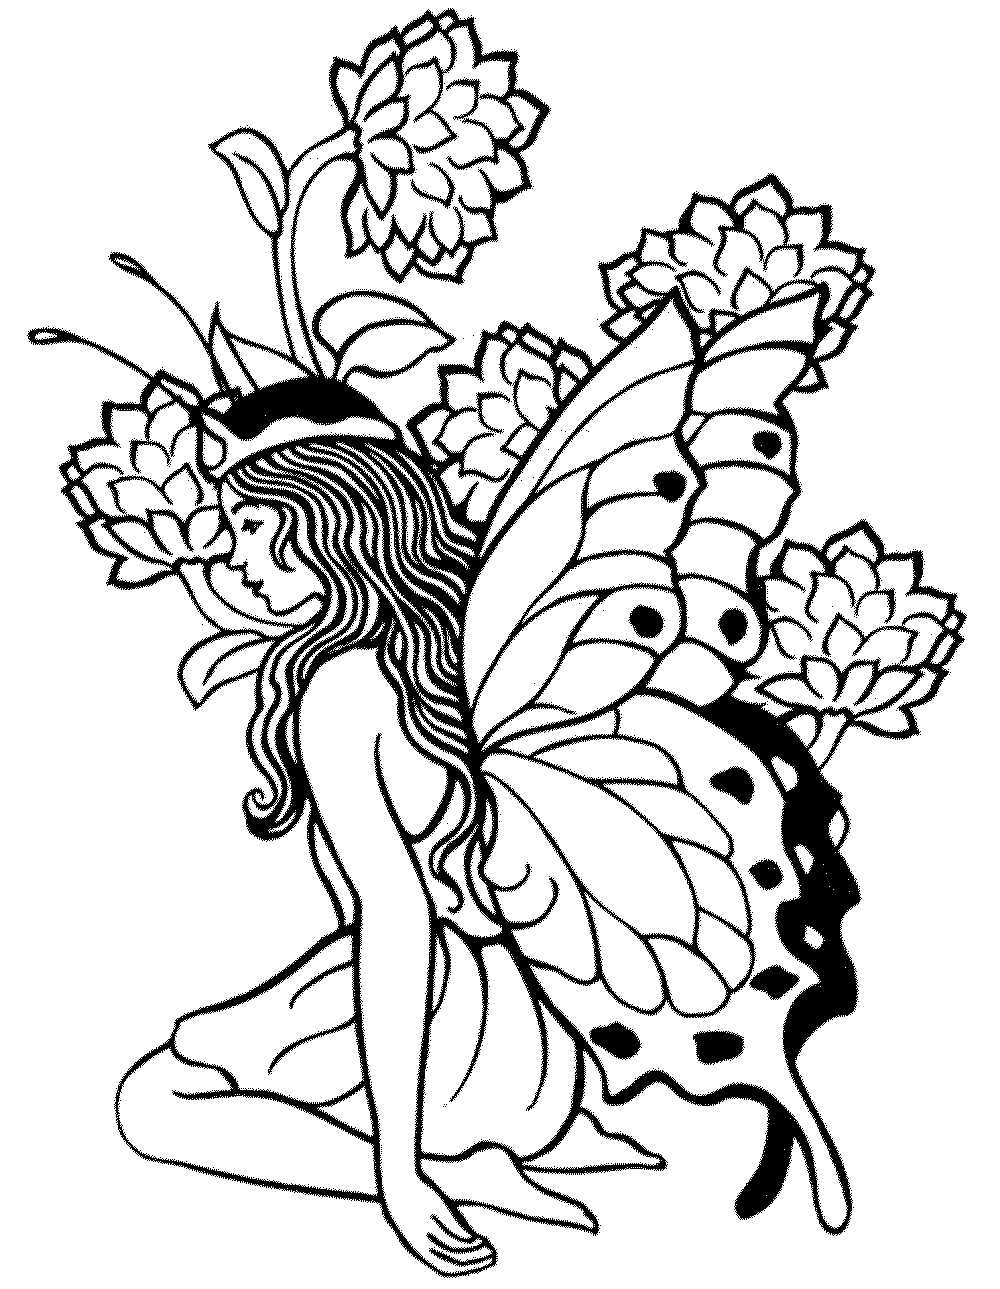 image regarding Printable Fairies Coloring Pages named Printable Grownup Coloring Web pages Fairy - Coloring Household